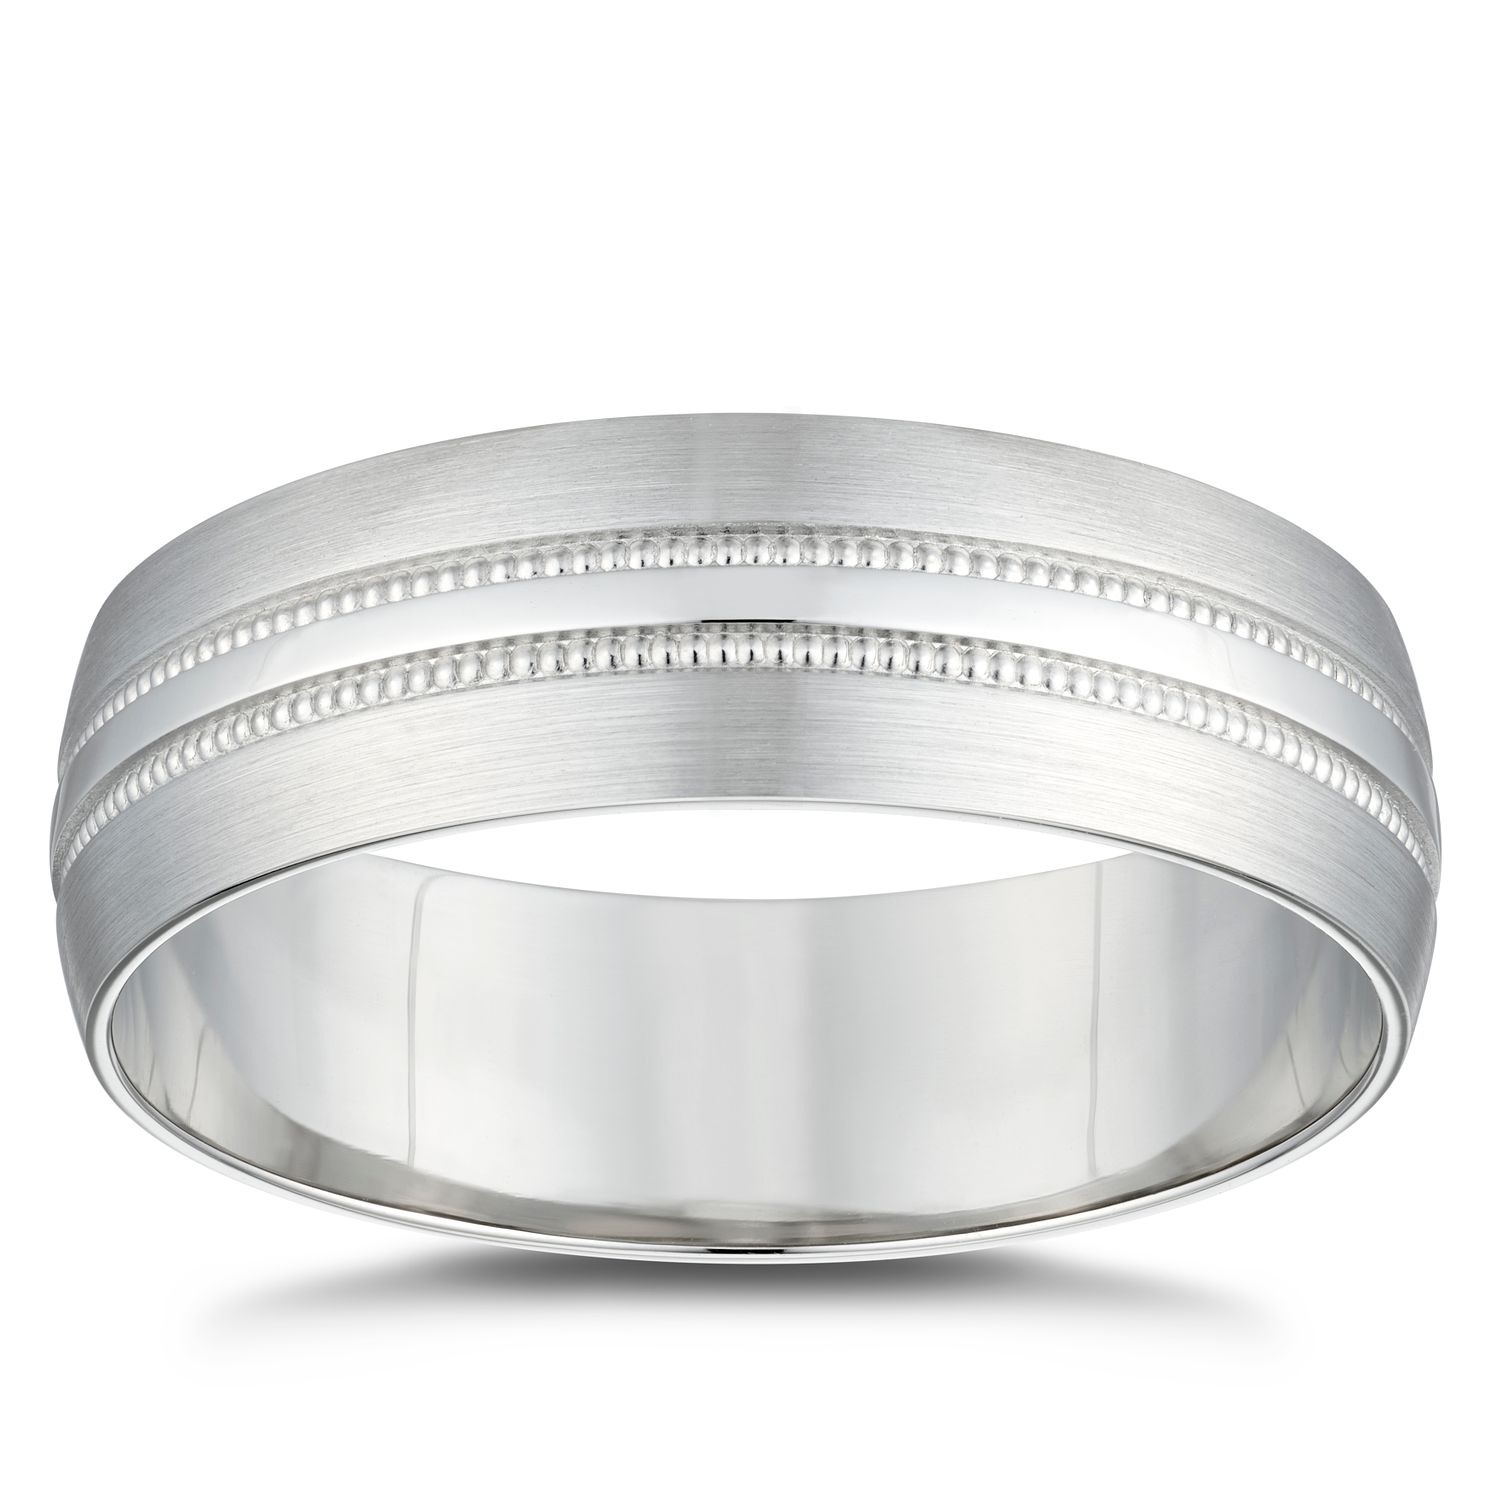 Platinum Matte & Polished Milgrain 6mm Wedding Ring - Product number 4854853